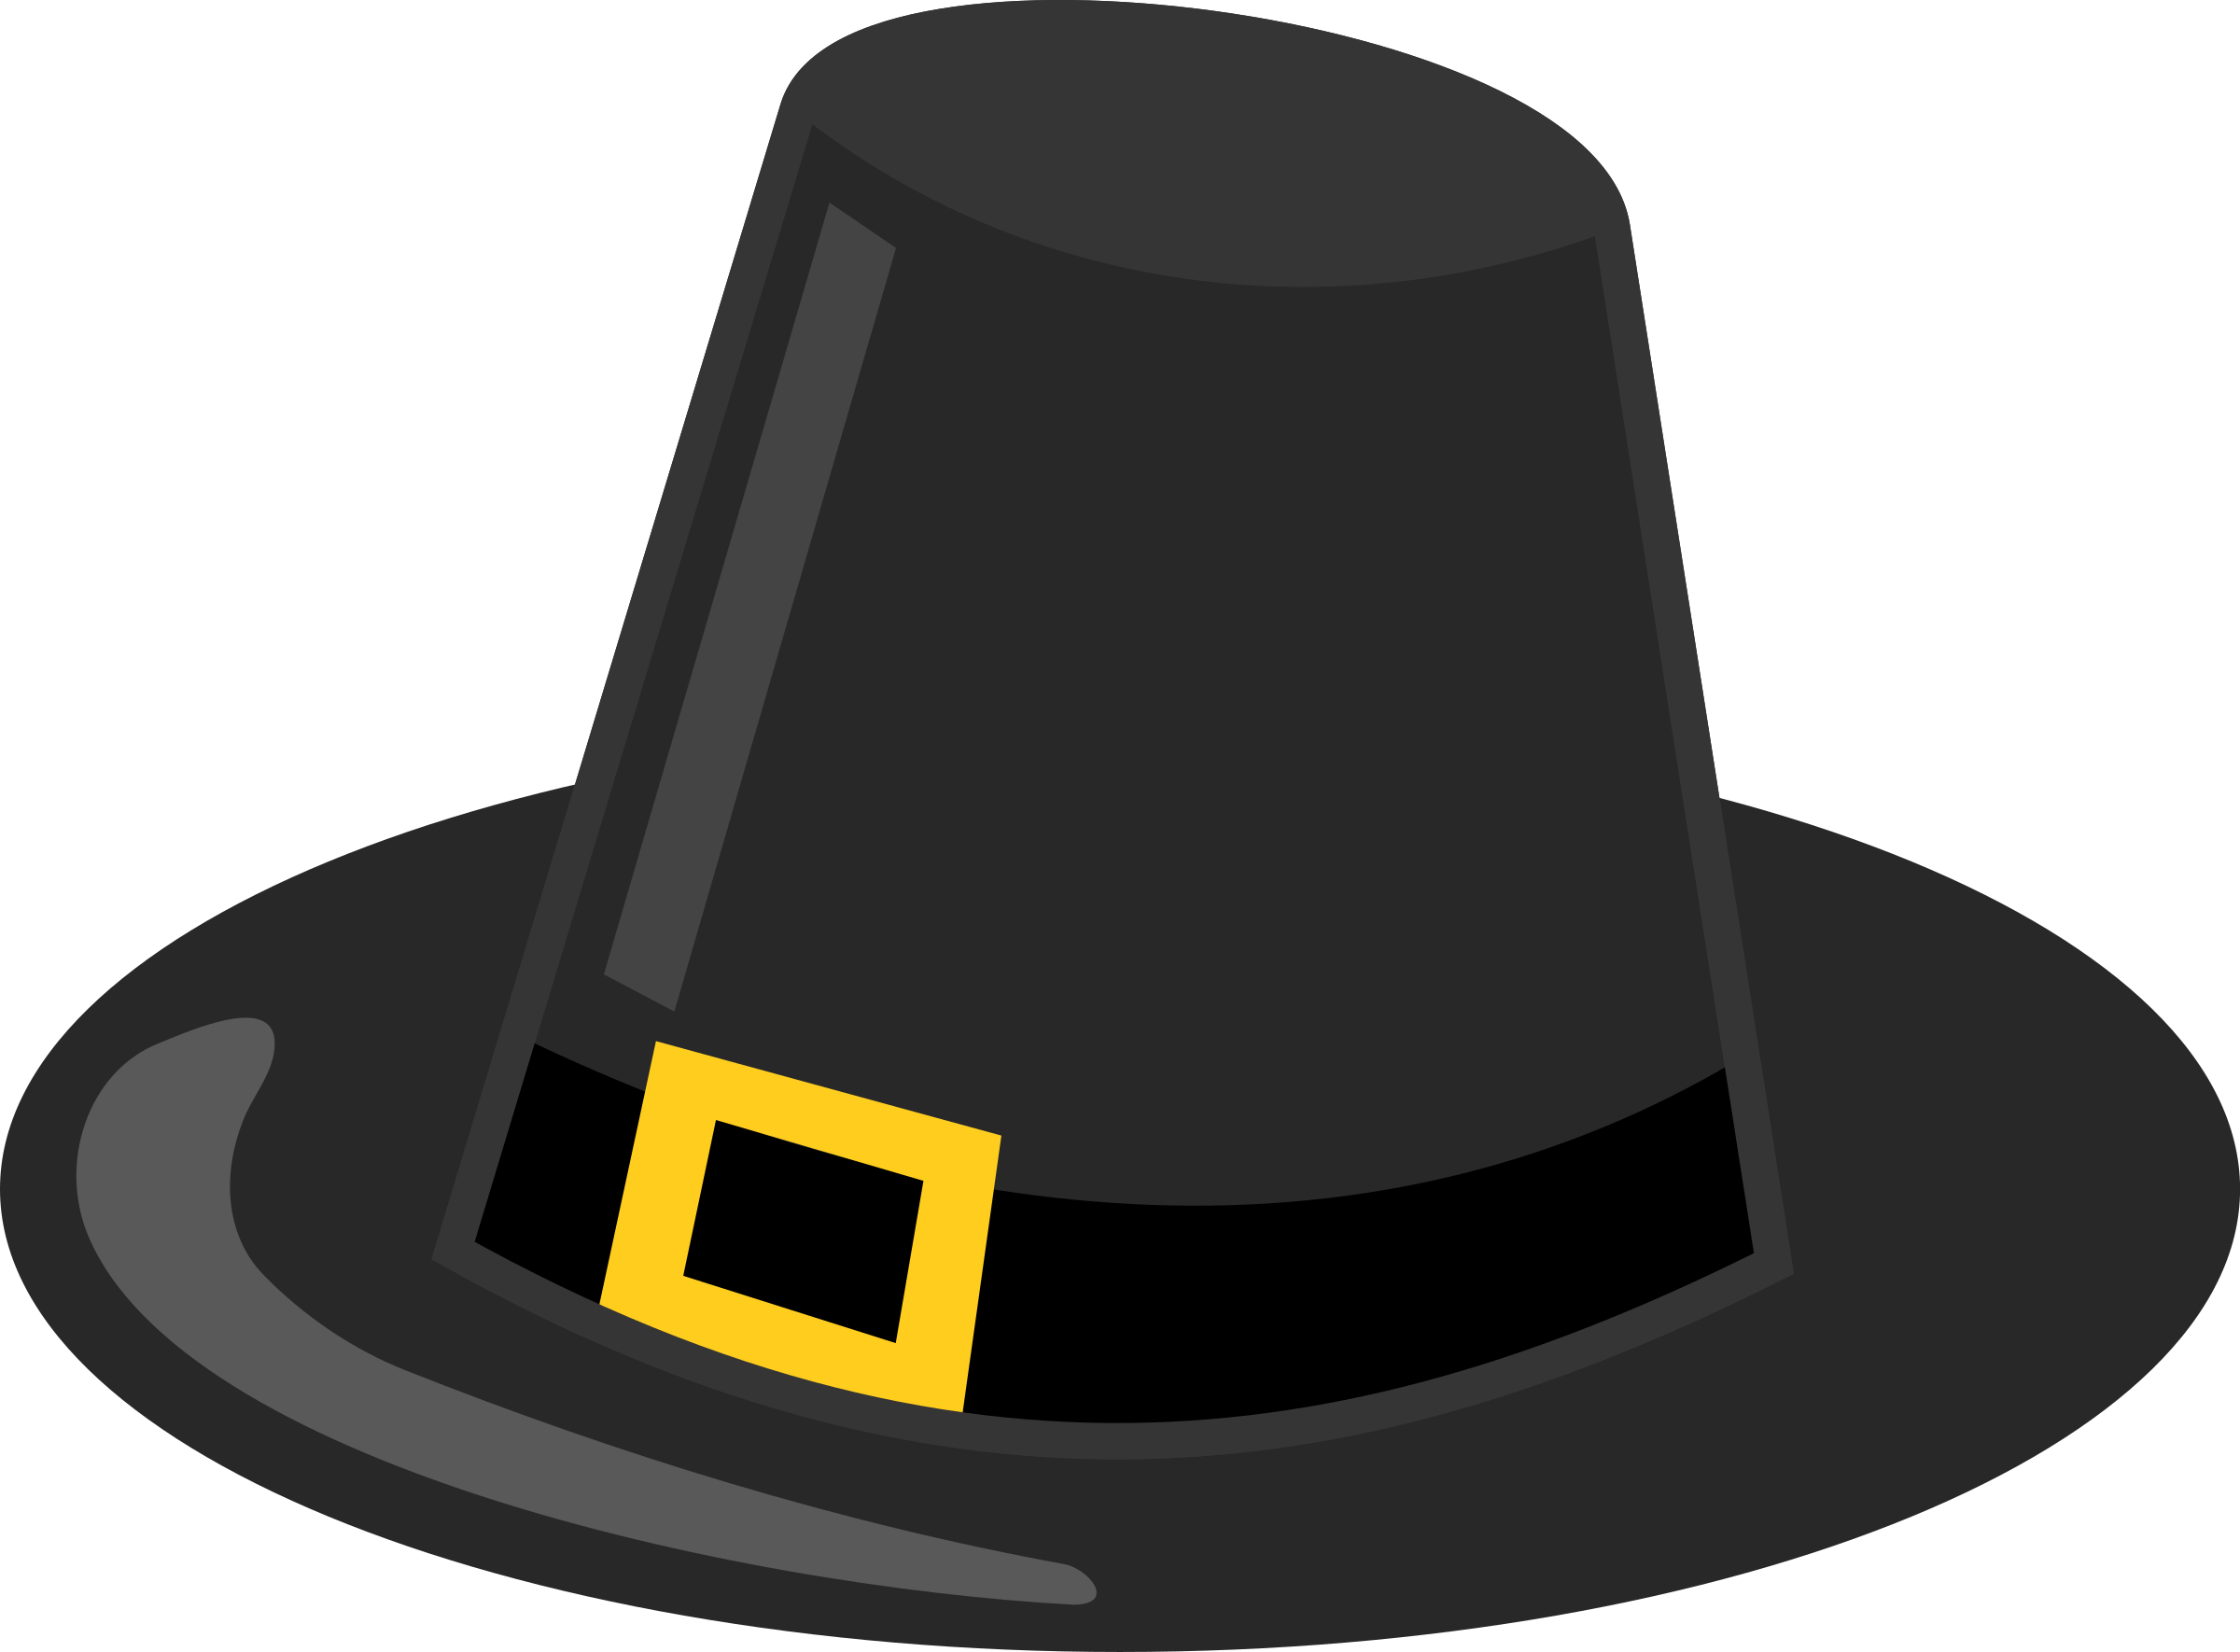 clipart pilgrim hat with black band thanksgiving turkey clip art images thanksgiving turkey clip art free images